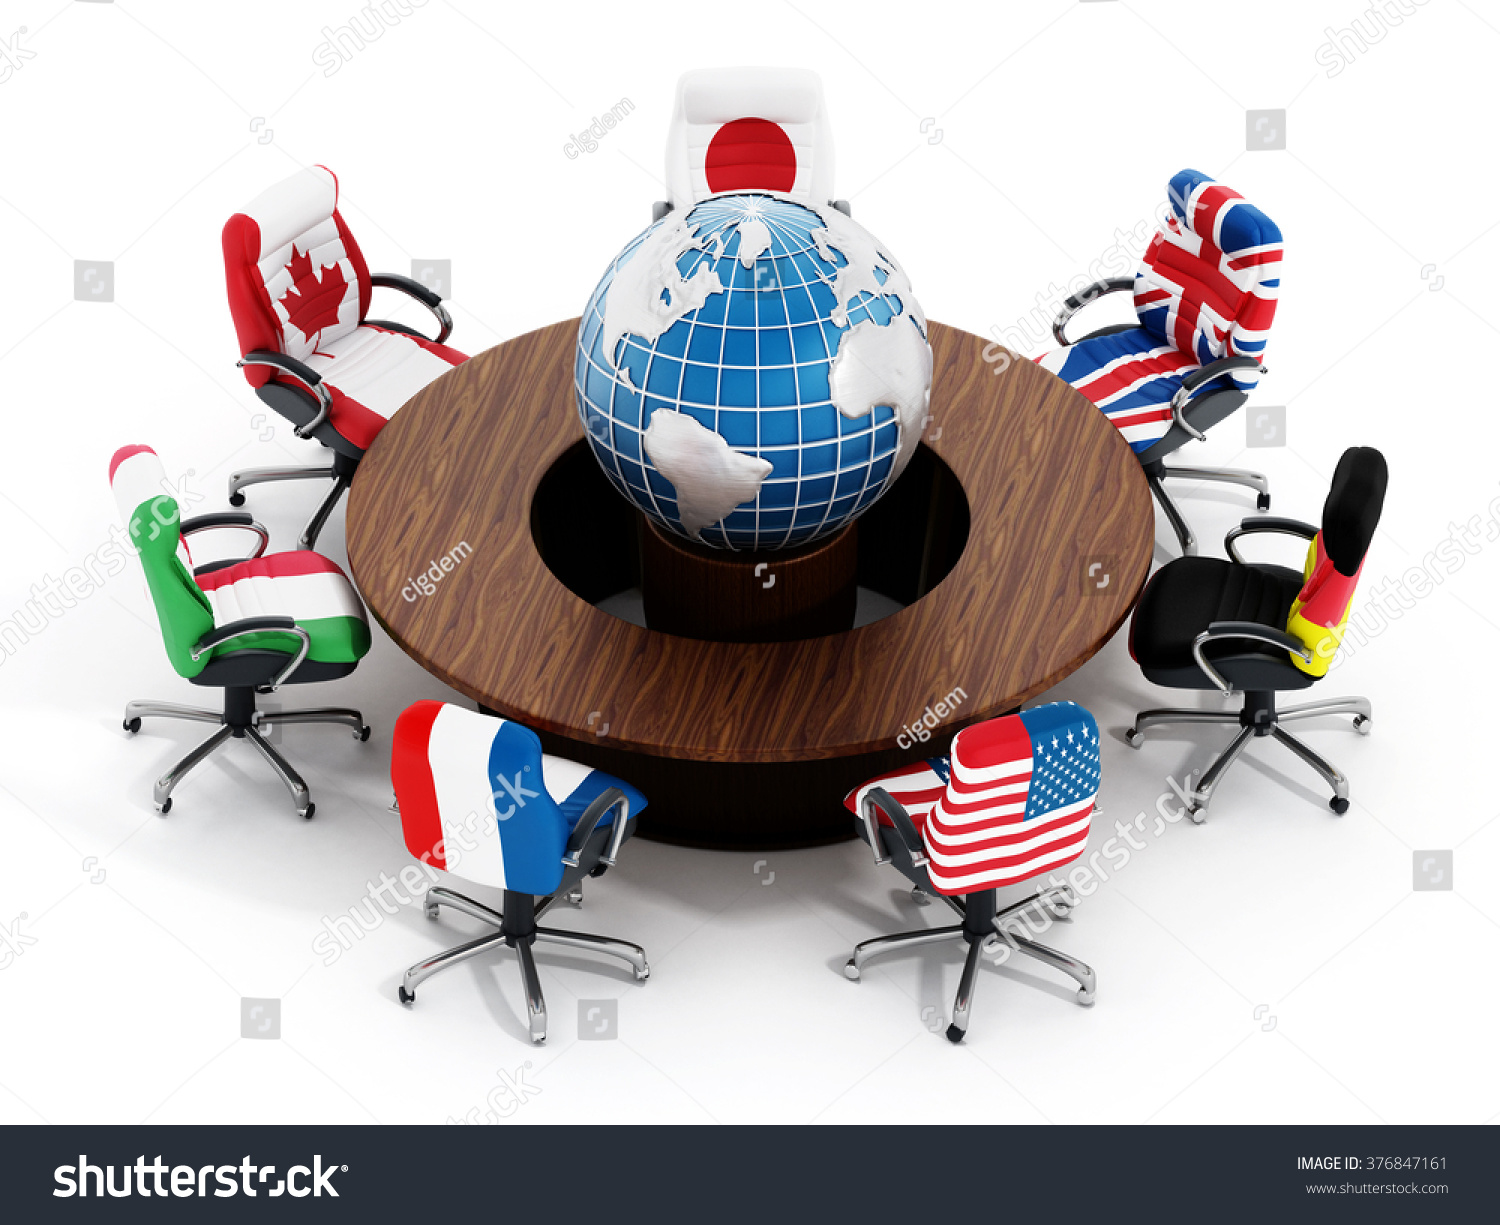 globe office chairs. G7 Country Flags On Office Chairs Around Table Wth Globe Isolated White  Background L